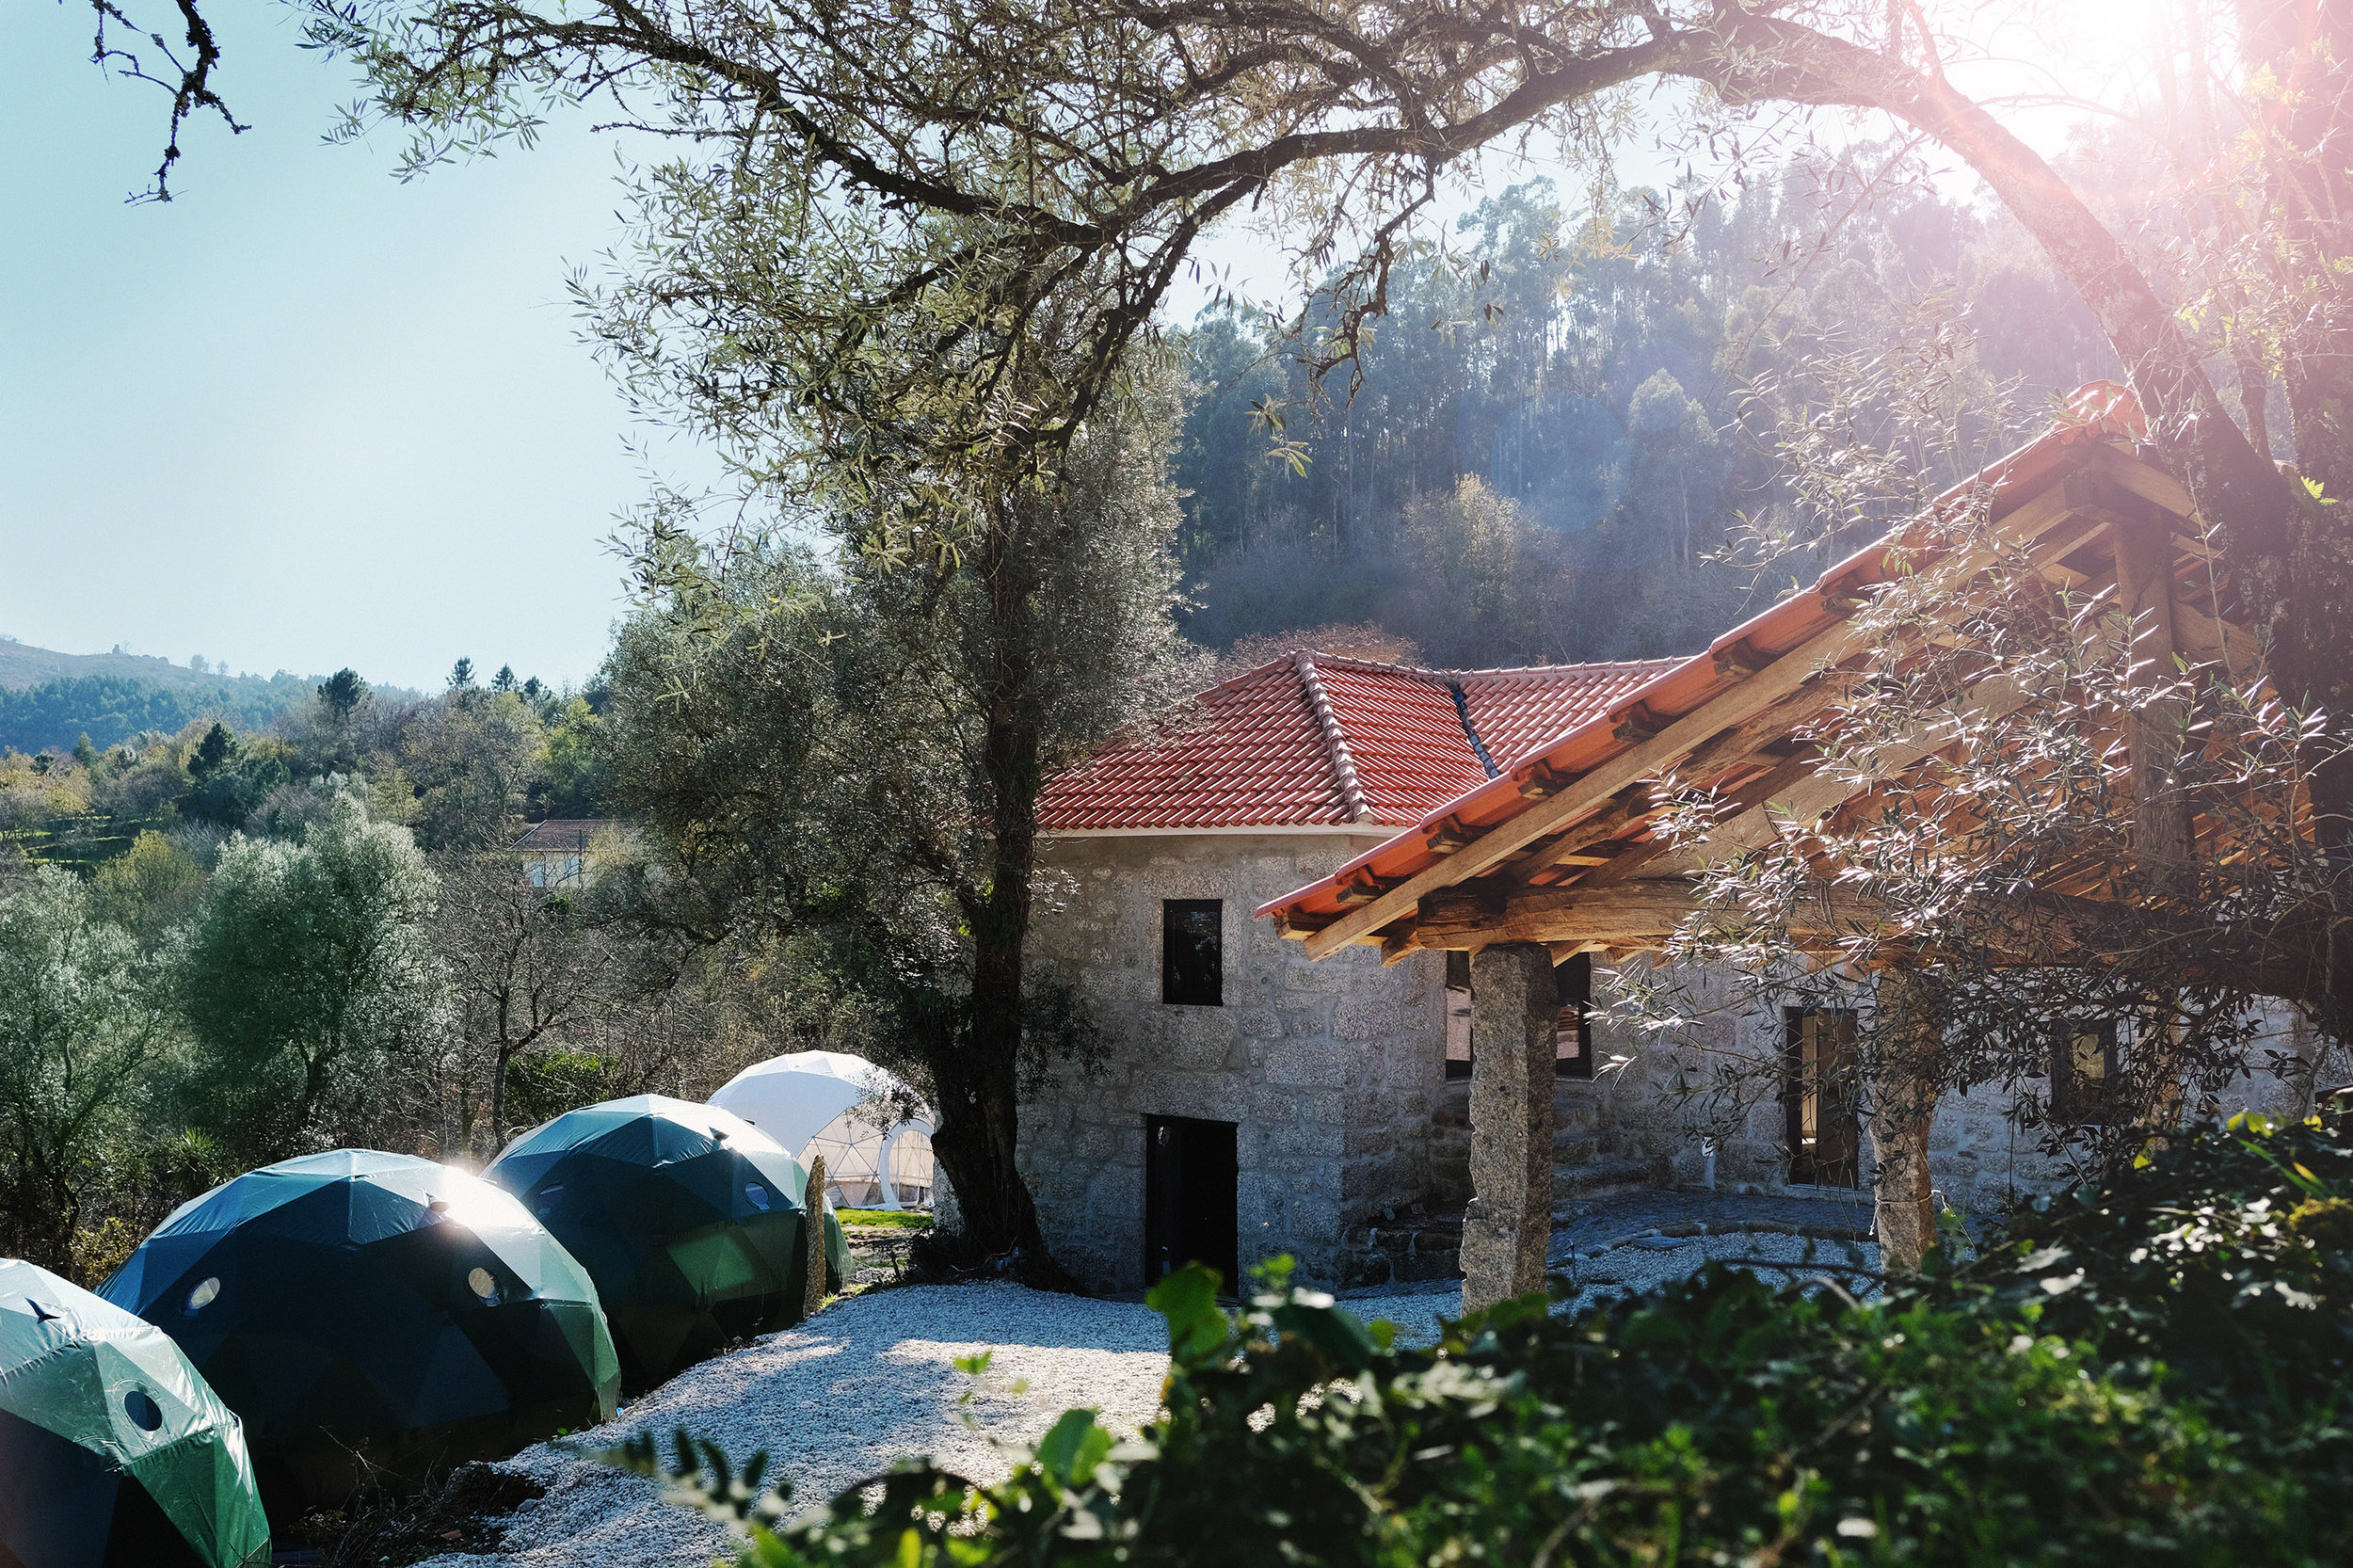 Be part of the first Wunder Retreat. - We are so excited to announce our first Wunder Retreat in collaboration with Wunder's nutritional expert Chantal Di Donato at her beautiful new Eco Dharma Village in Northern Portugal from October 4th to 7th 2019.